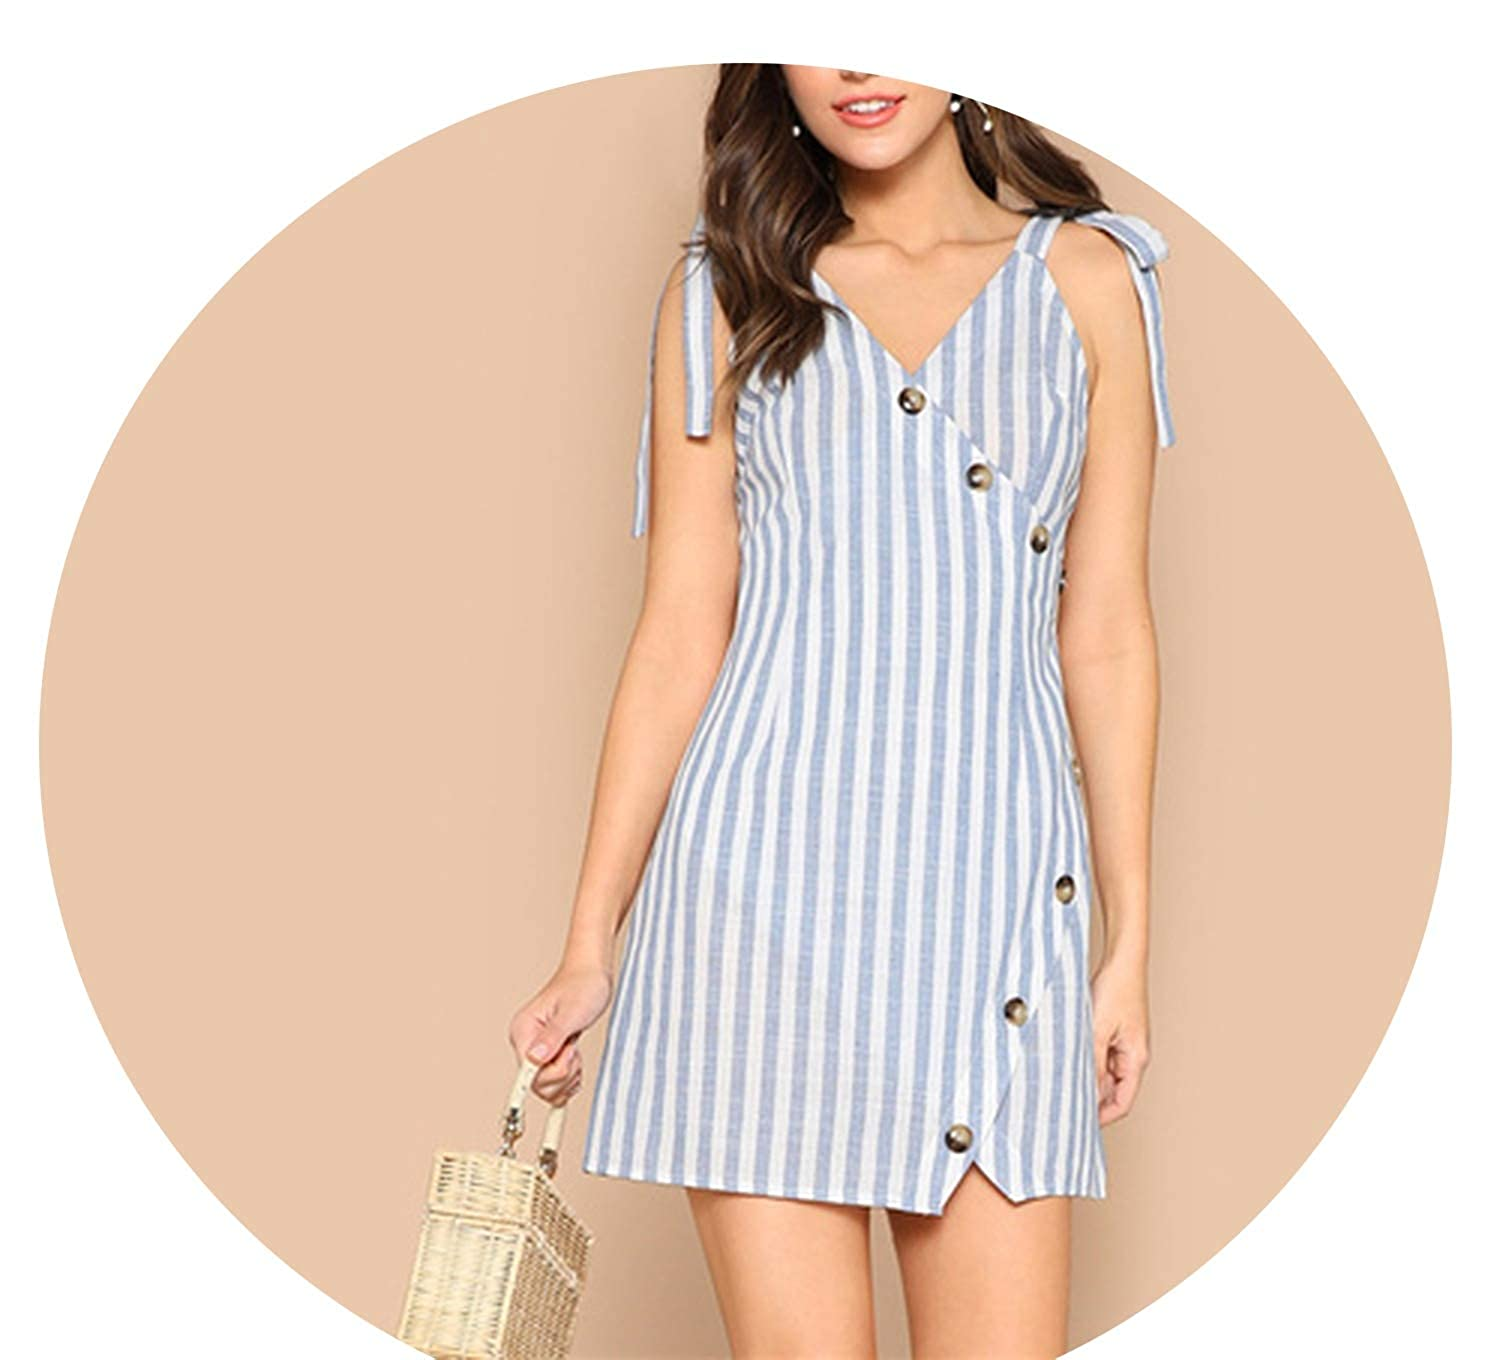 bluee Lost Stars Boho bluee Striped Summer Mini Dress Women Wrap Buttoned Sleeveless Sheath Dresses